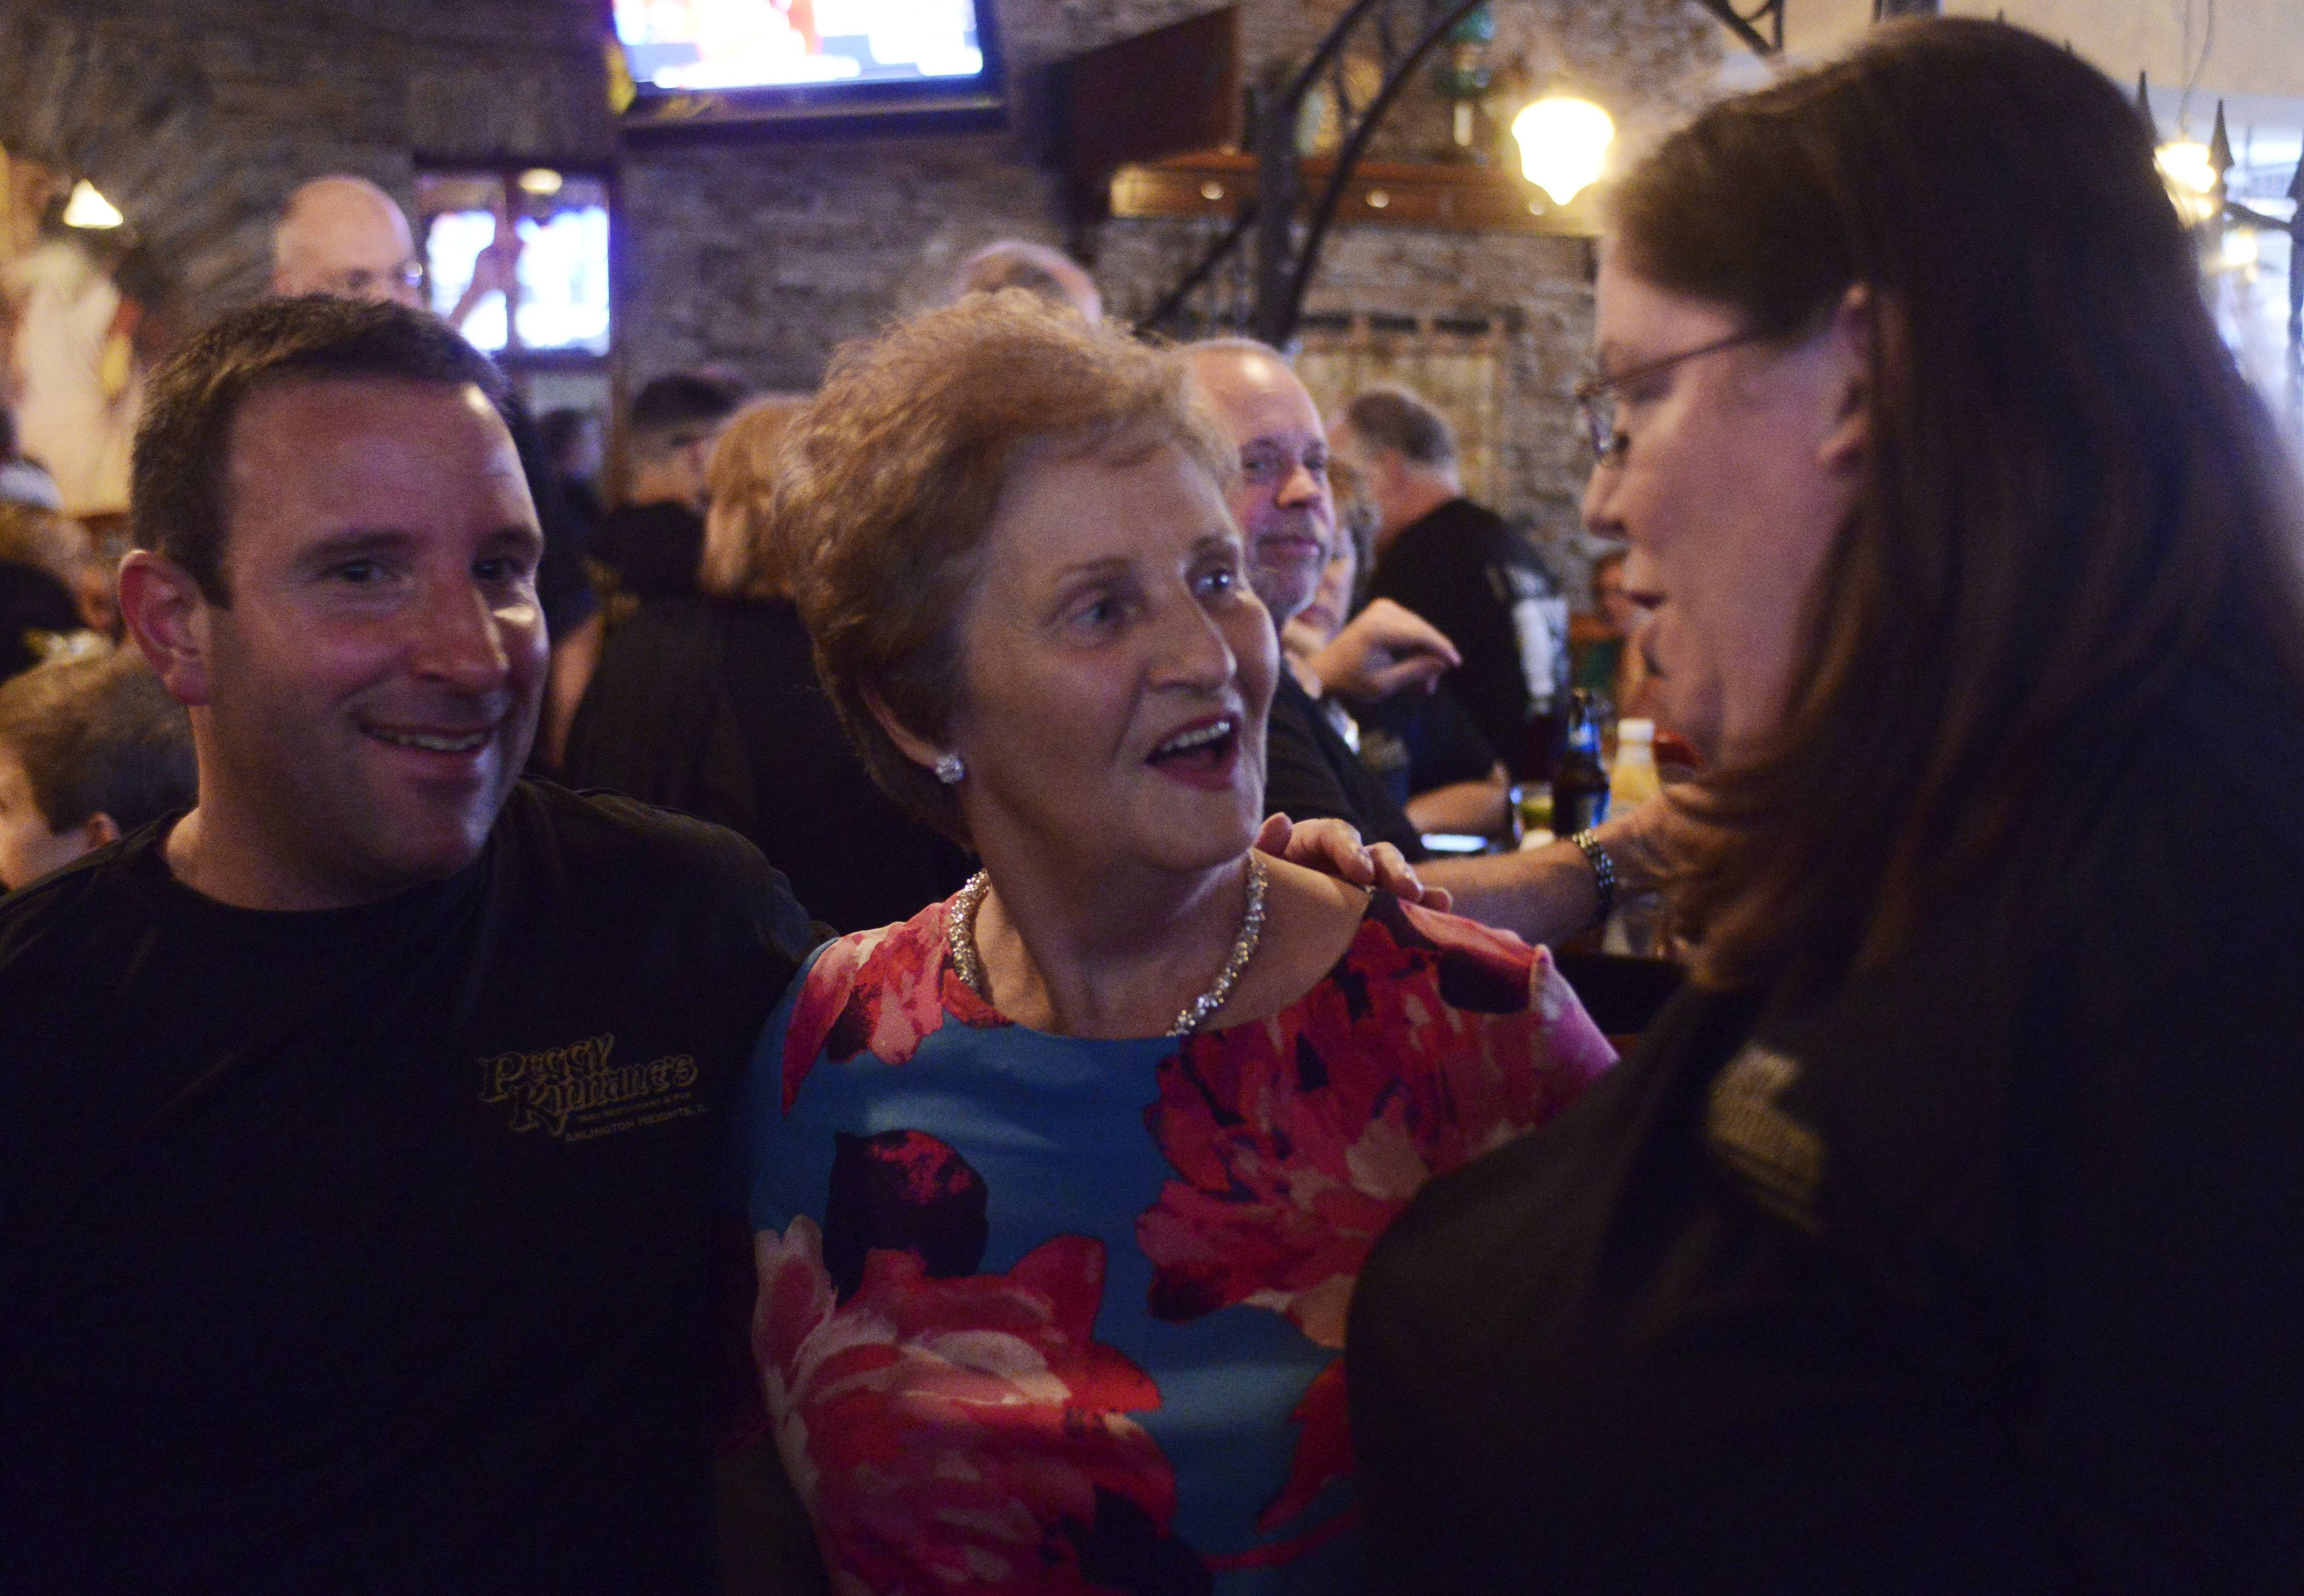 Peggy Kinnane, 75, namesake of the Arlington Heights restaurant and mother of owner Derek Hanley, chats with Chip Iuorio, left, and Karin Weizel, both of Palatine, while posing for photos Wednesday night during a visit from Ireland.